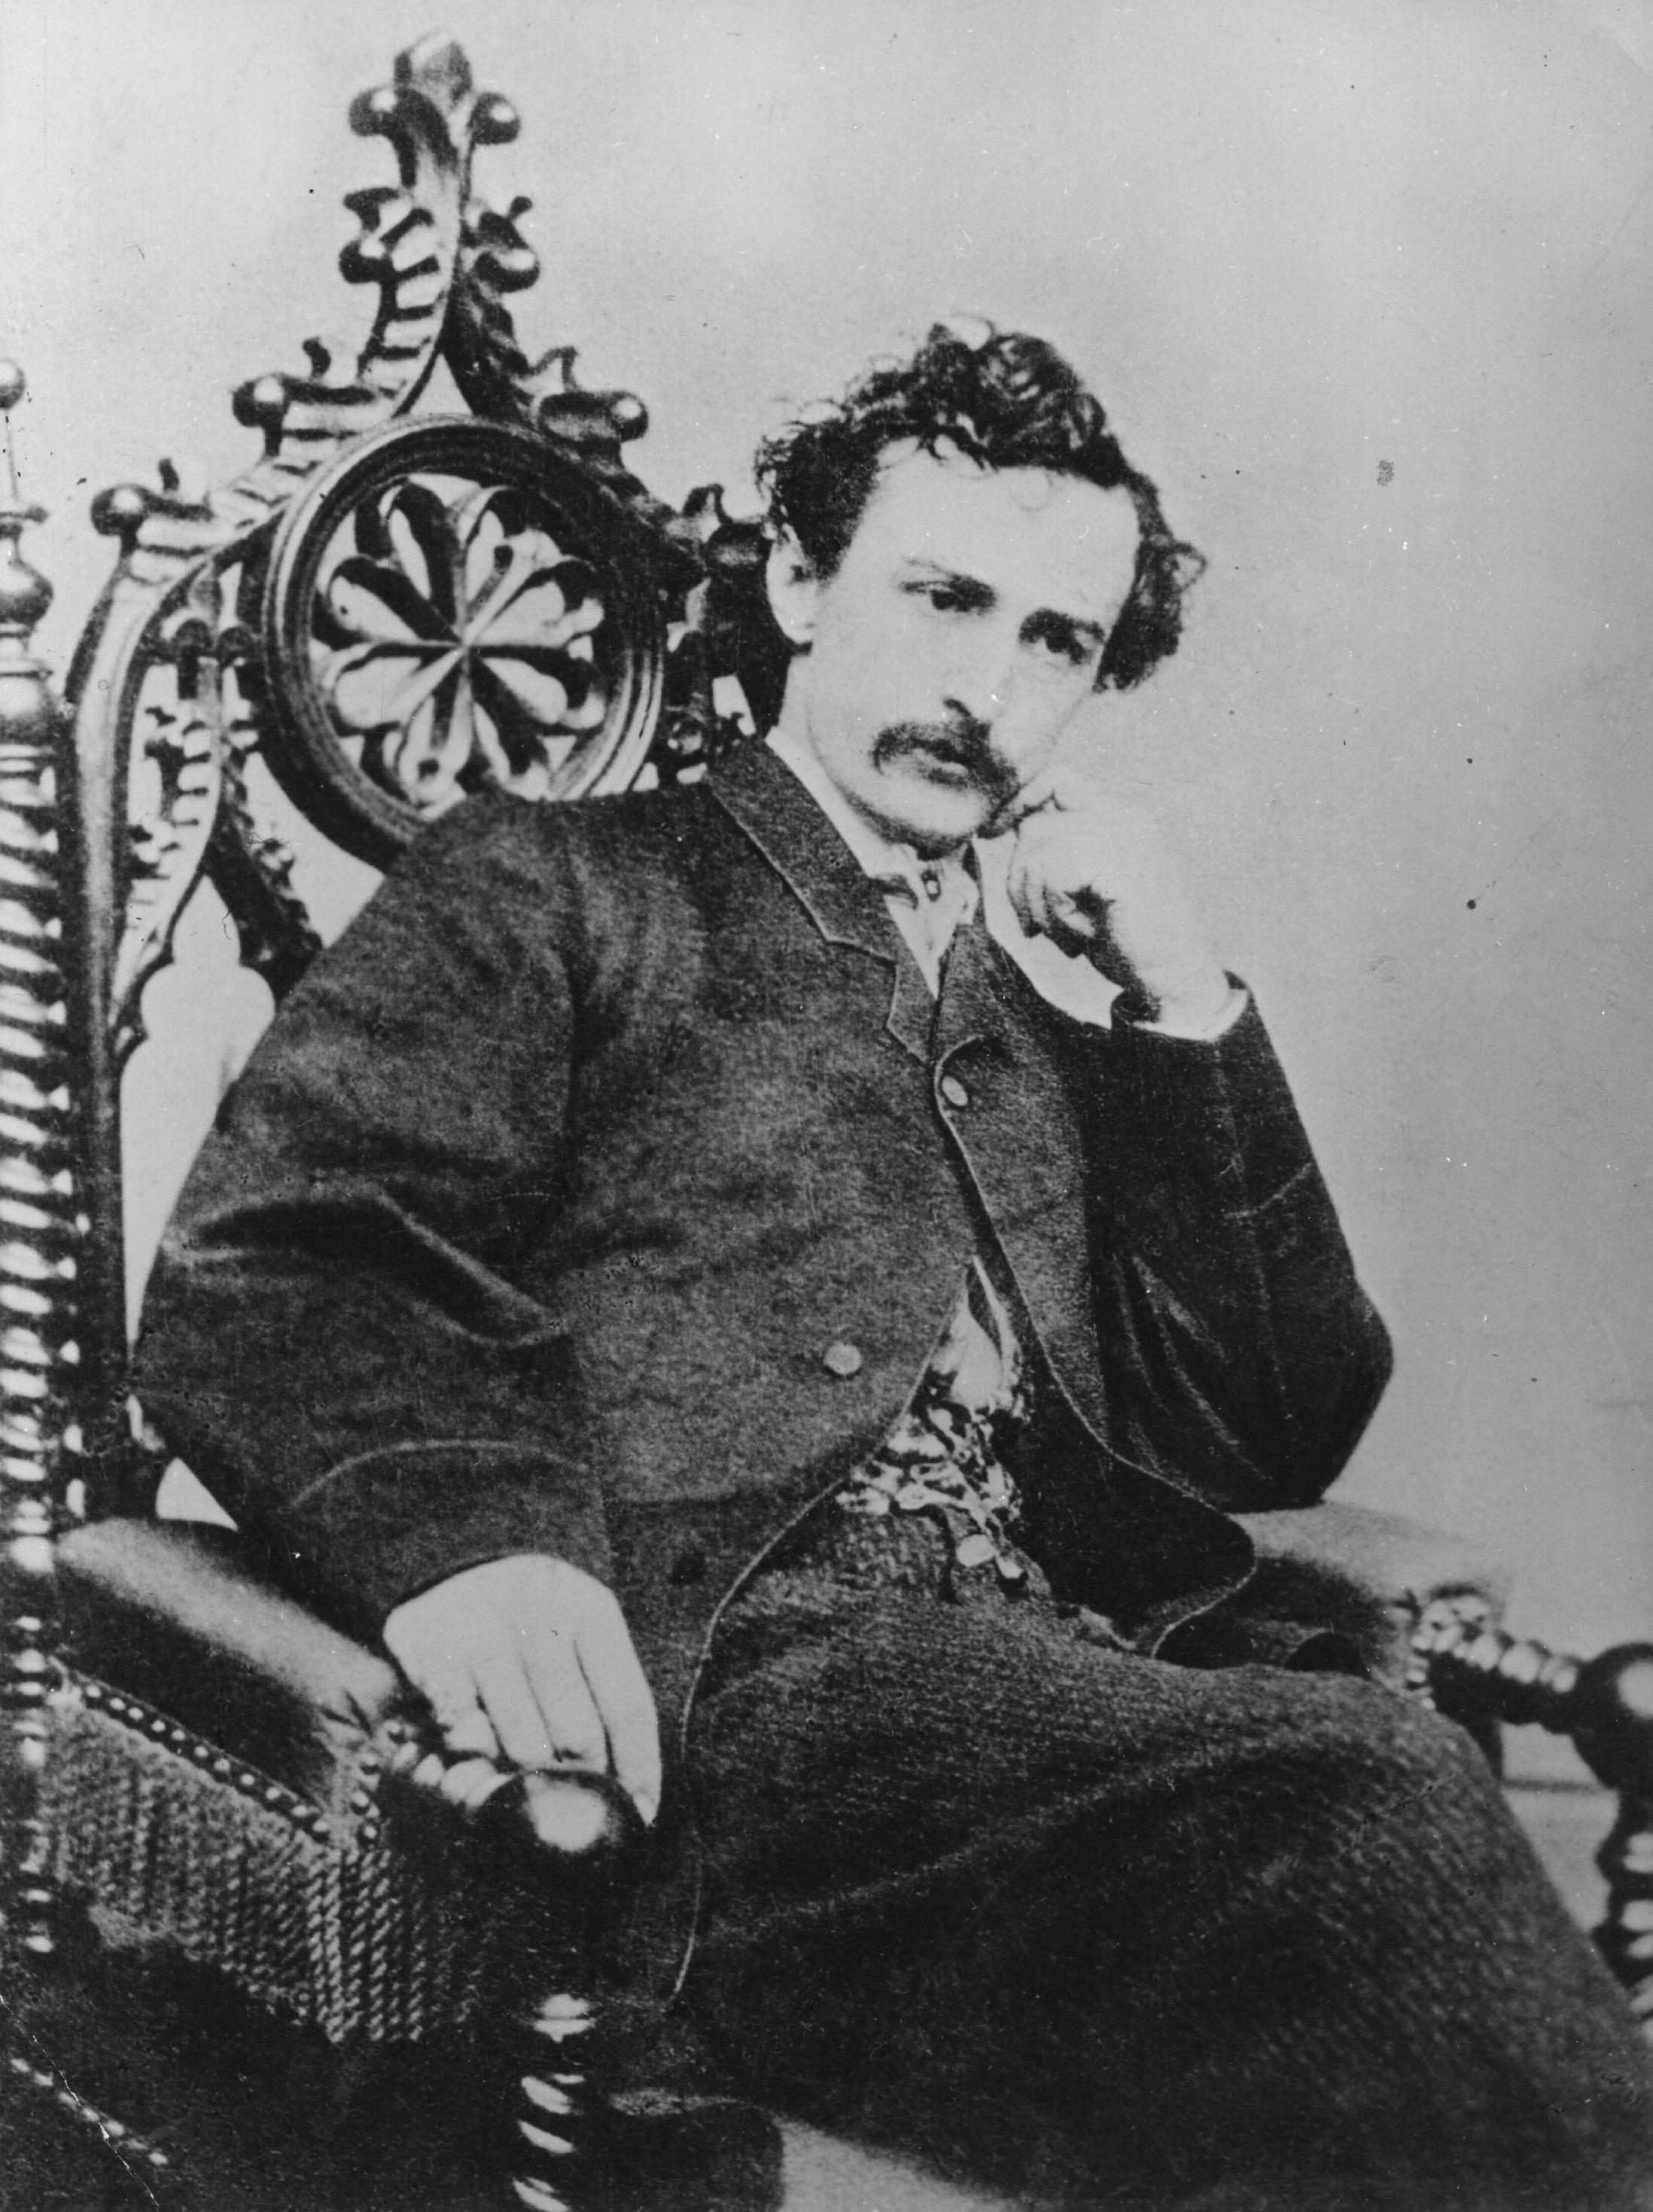 john wilkes booth biography am history 'fortune's fool,' the first-ever biography of john wilkes booth, portrays lincoln's assassin as charismatic, talented, and overcome with hatred and rage.